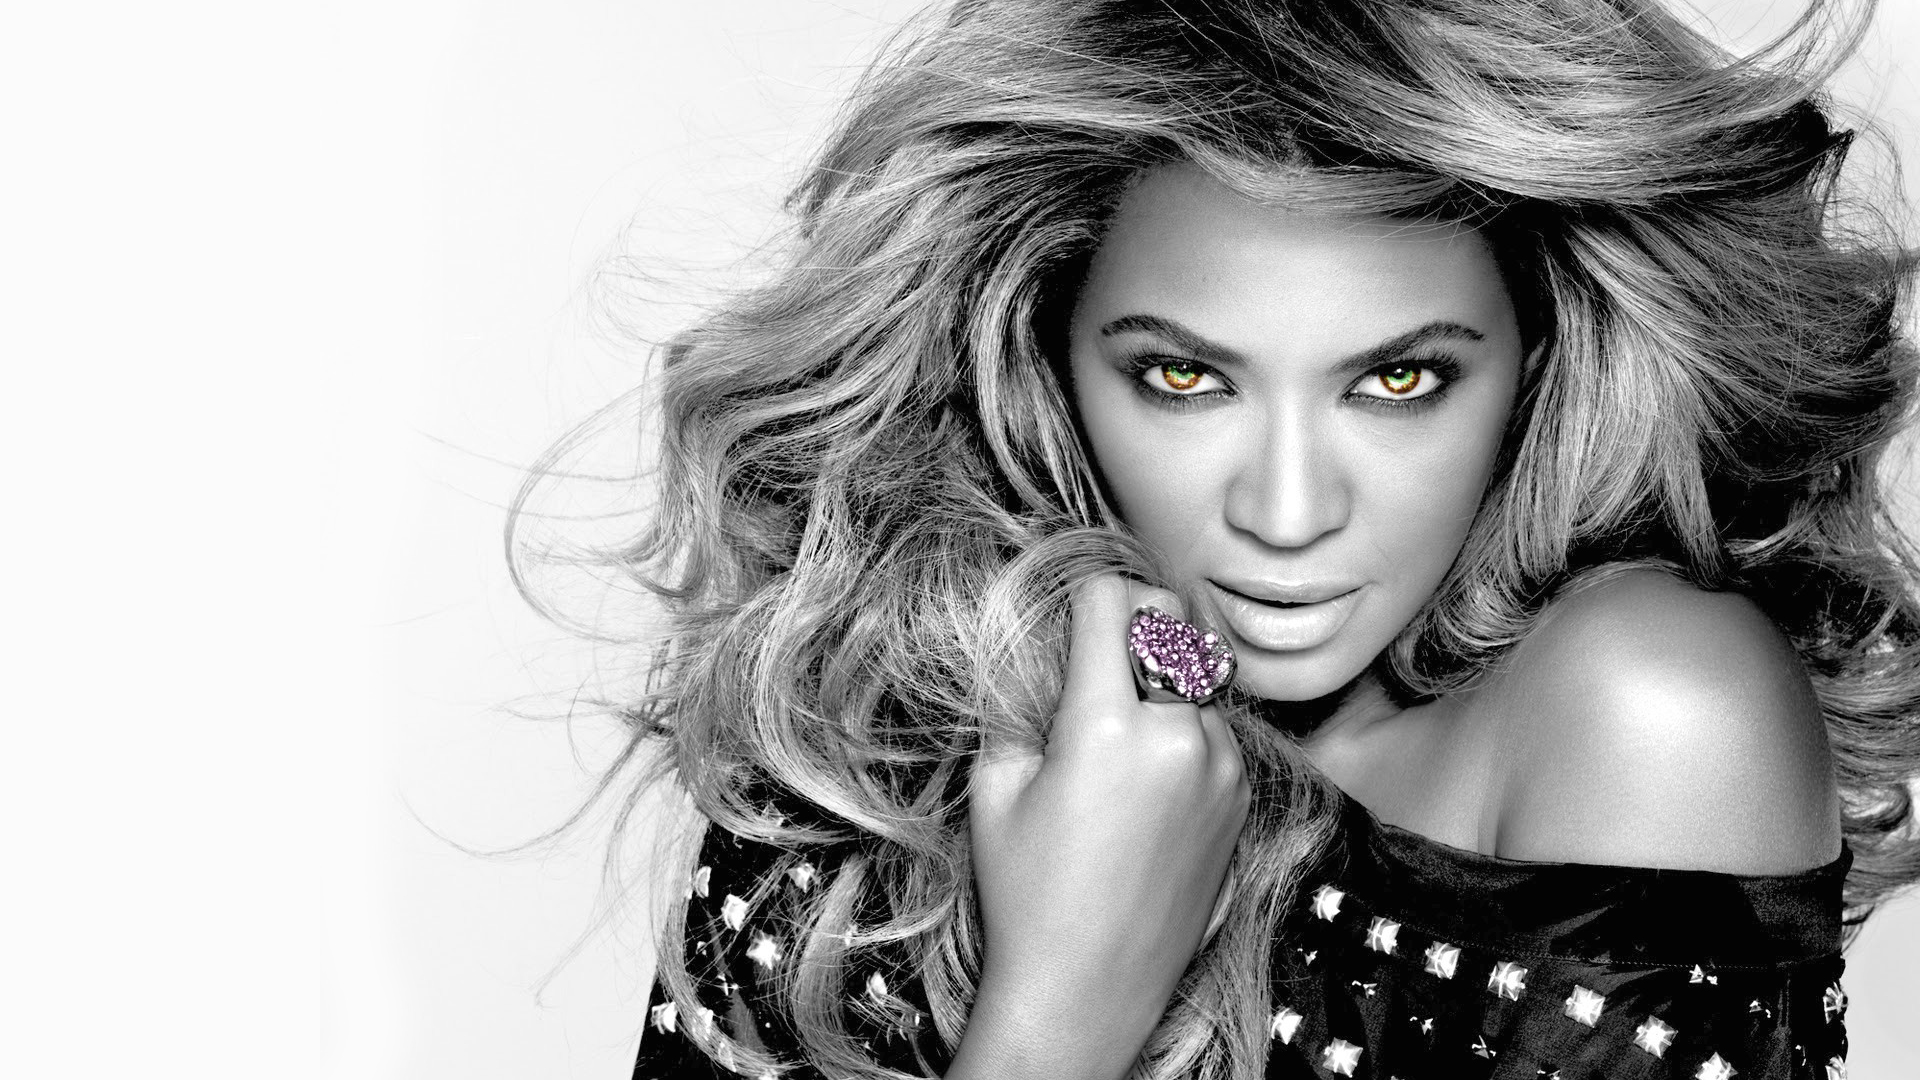 Beyonce Wallpaper Beautiful Beyonce Wallpapers 31 1920x1080